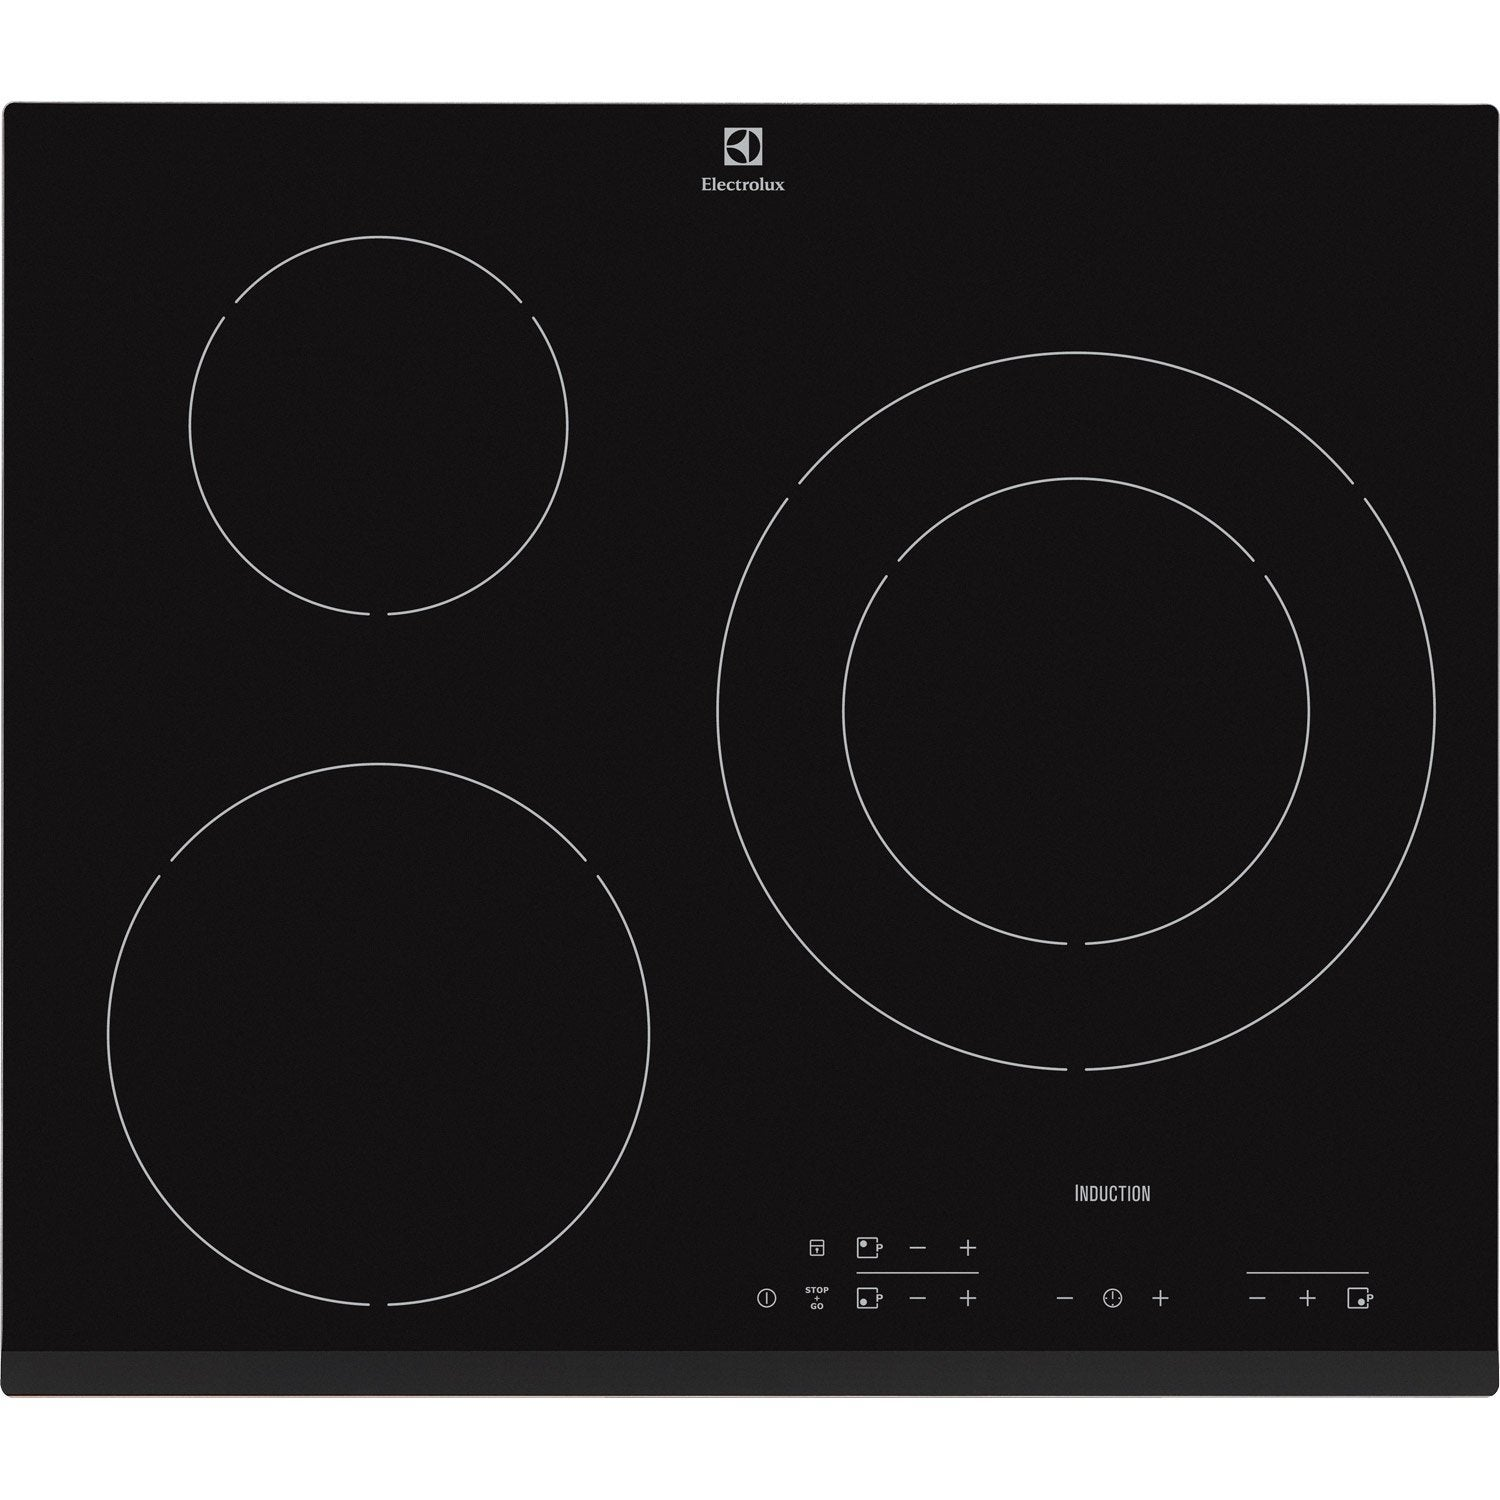 Plaque induction electrolux e6223hfk 3 foyers leroy merlin - Table de cuisson induction electrolux ...